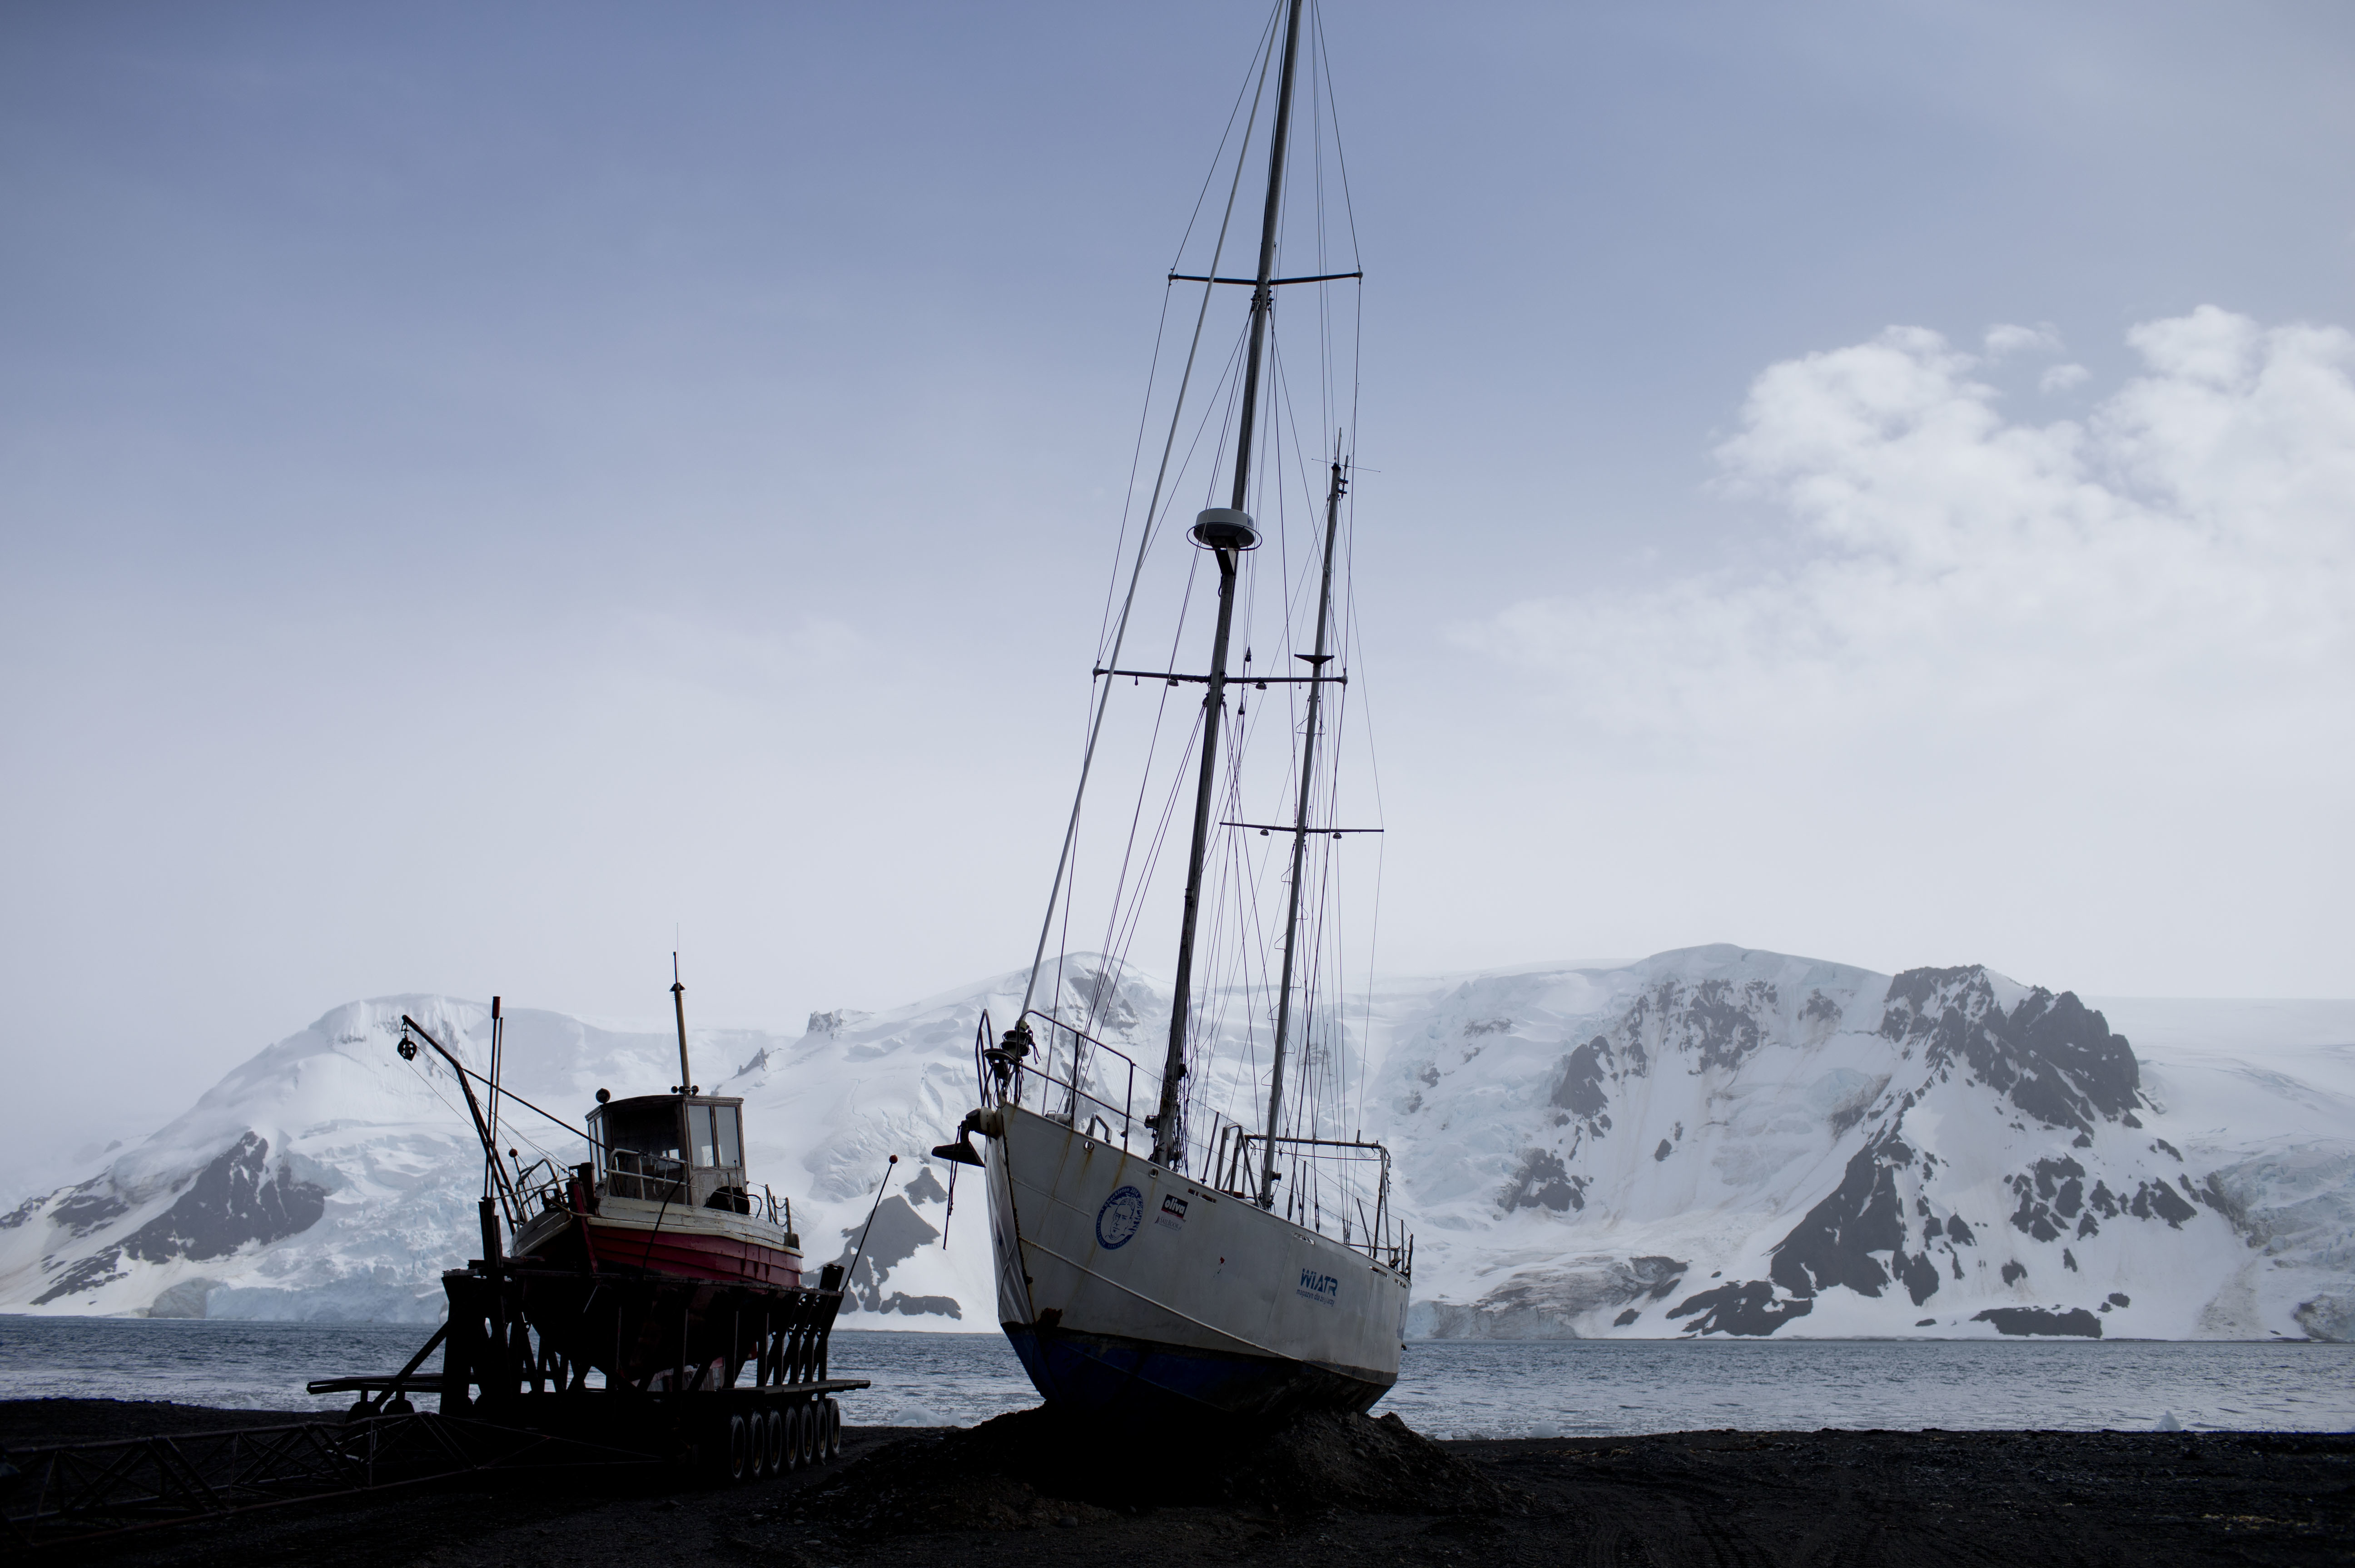 Boats sit on the beach at Bahia Almirantazgo in Antarctica. An agreement was reached on Friday to create the world's largest marine protected area in the ocean next to the frozen continent. Natacha Pisarenko/AP